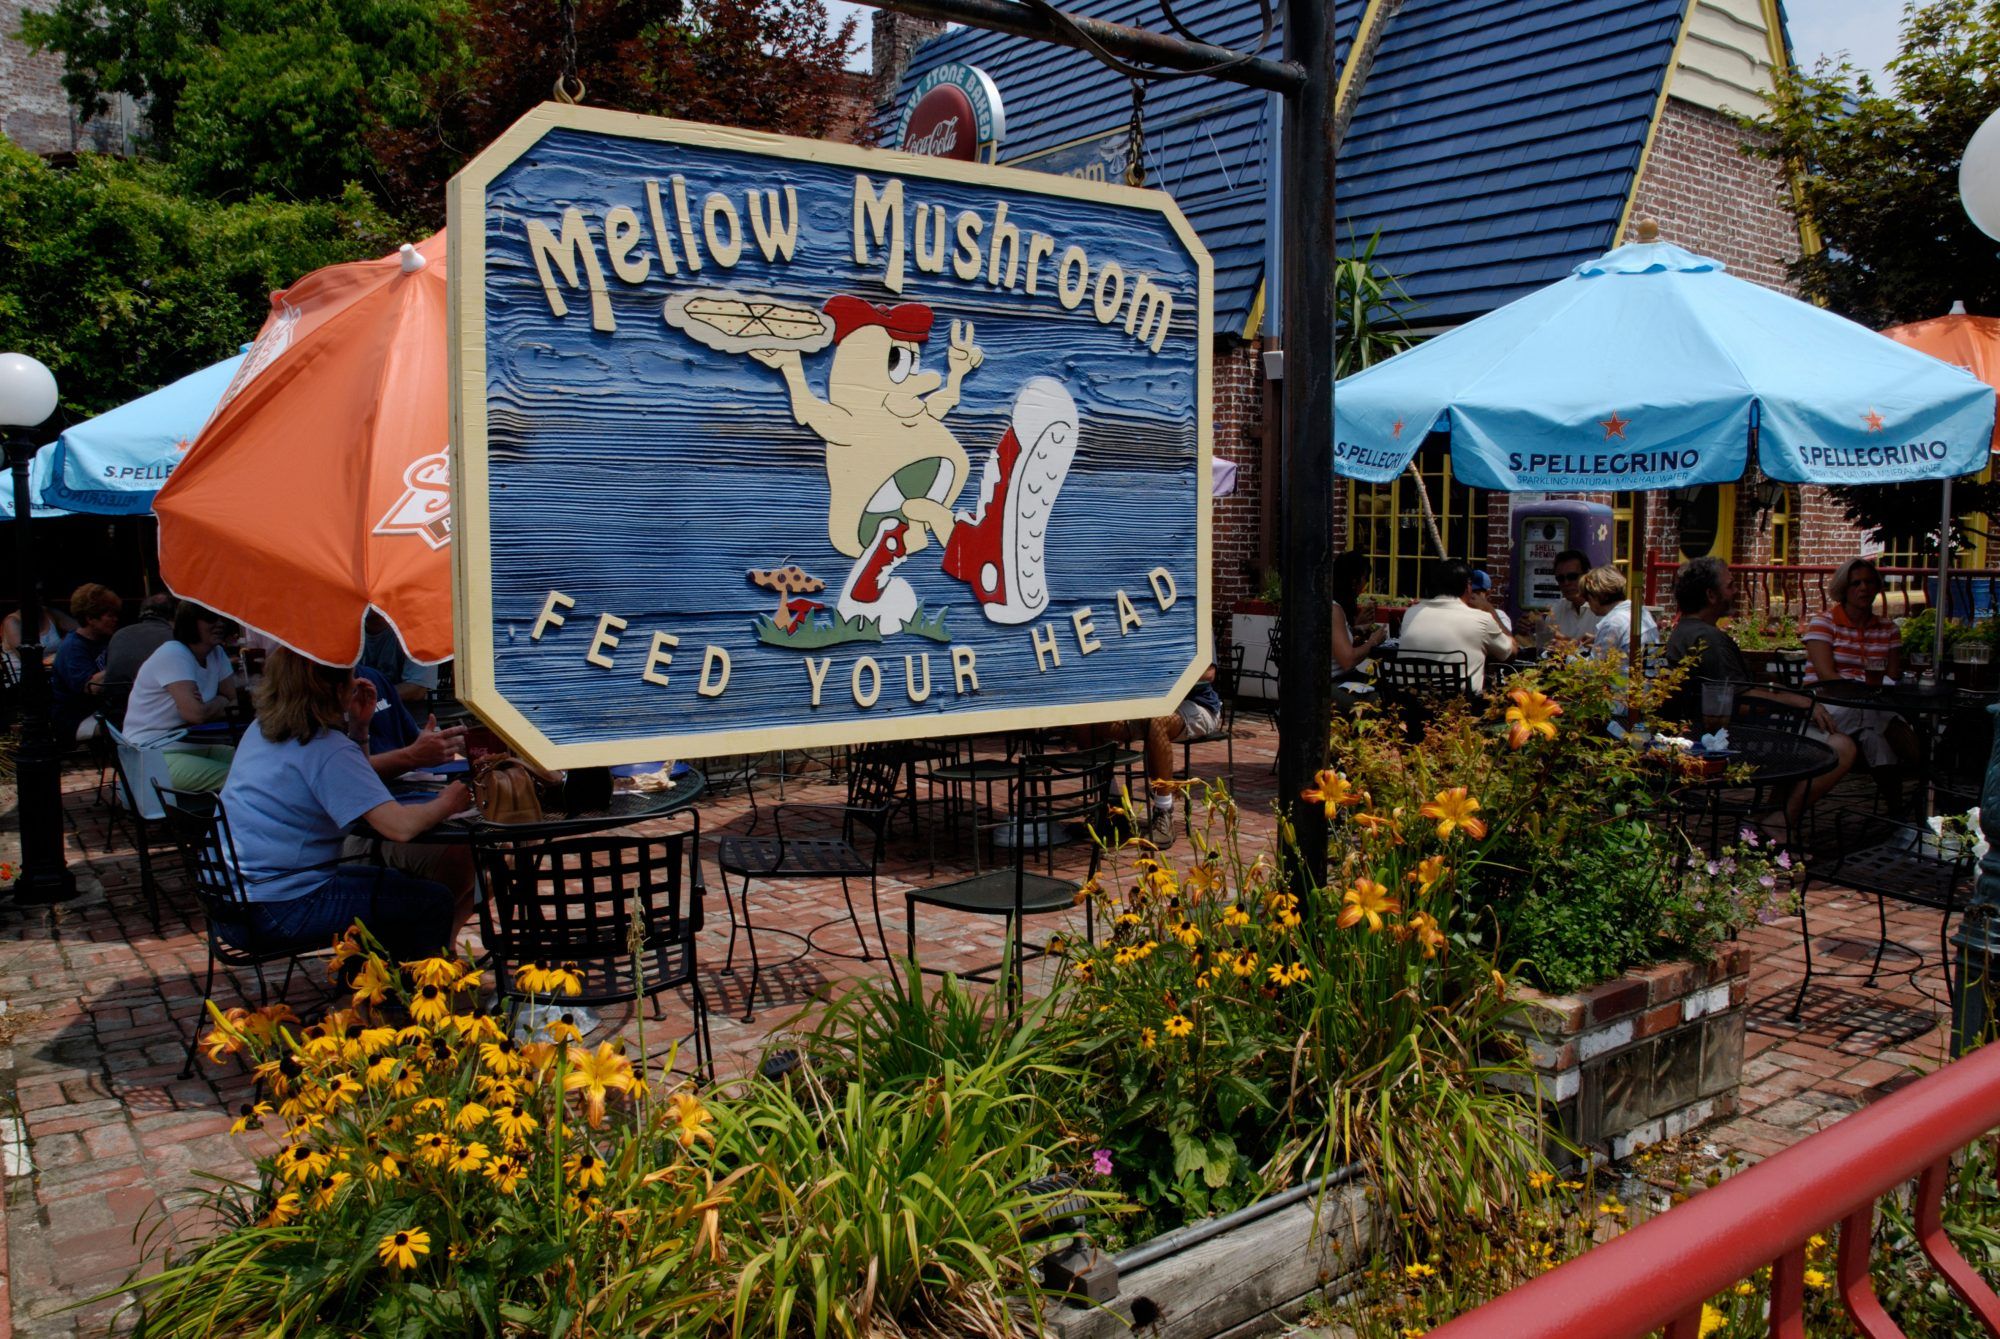 Mellow Mushroom pizza restaurant, a landmark establishment in Asheville, North Carolina